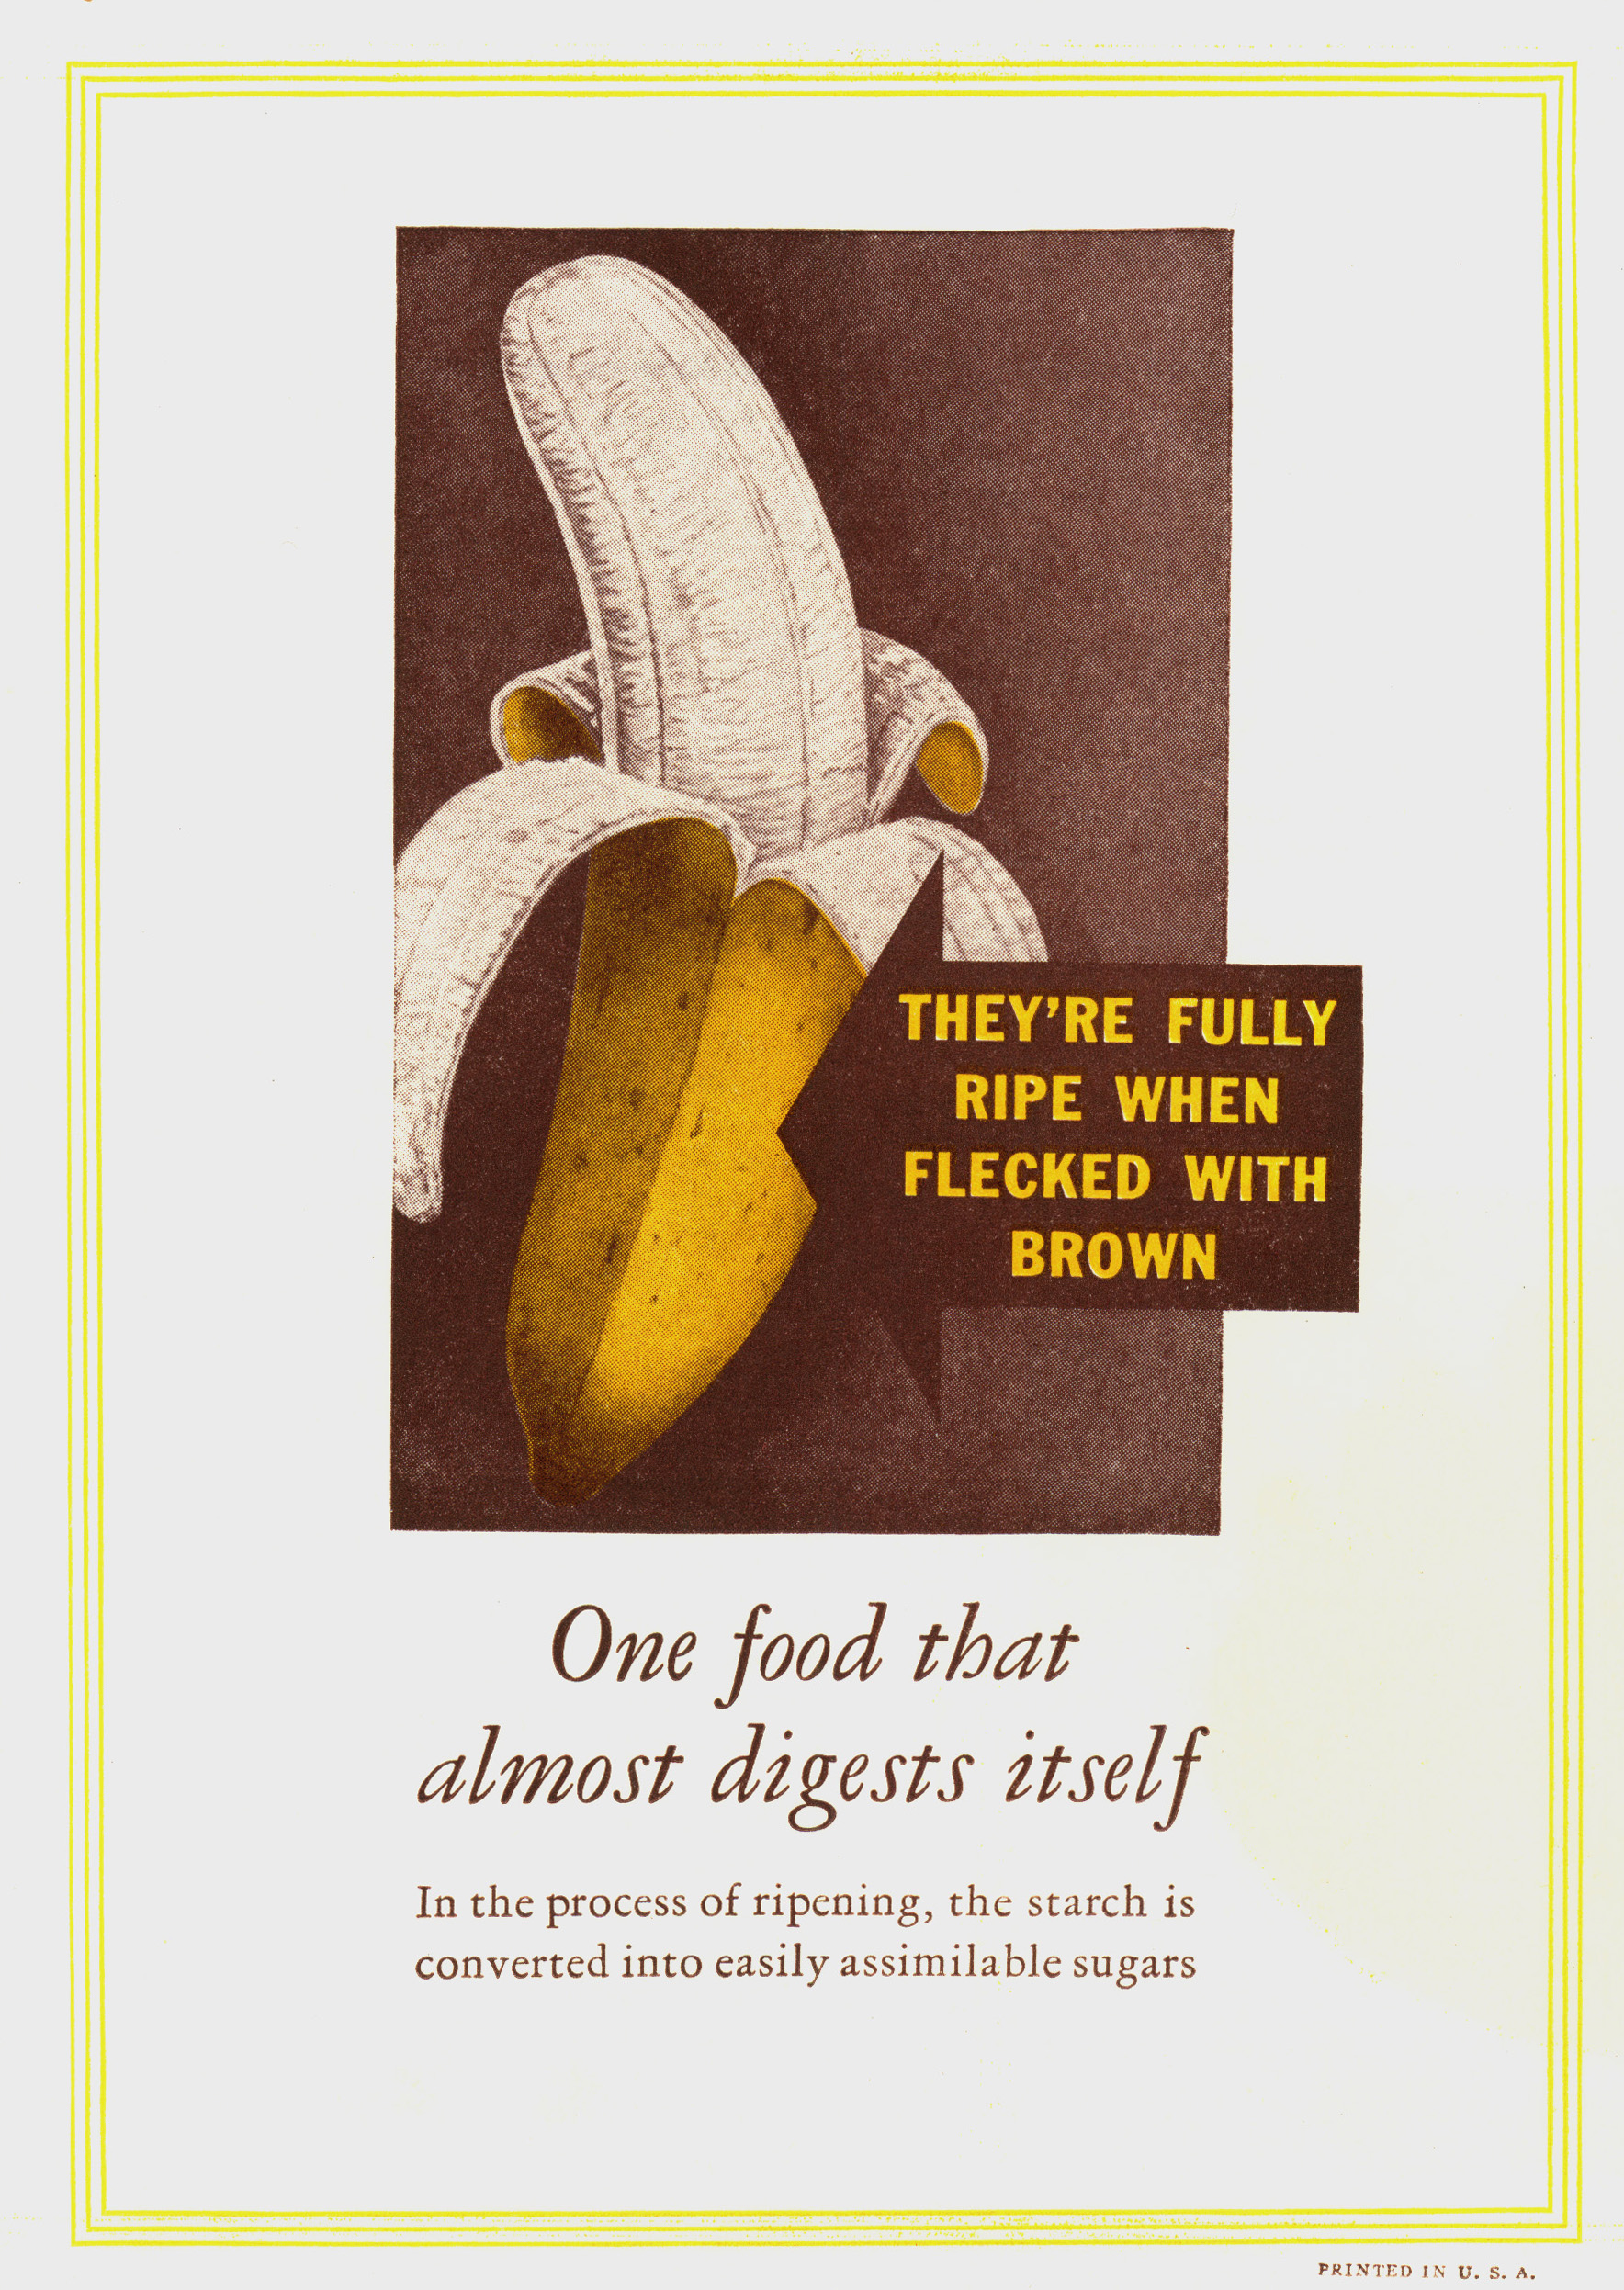 Answers to questions frequently asked about Bananas , United Fruit Company, ca. 1940. WPA Federal Writers' Project collection, NYC Municipal Archives.